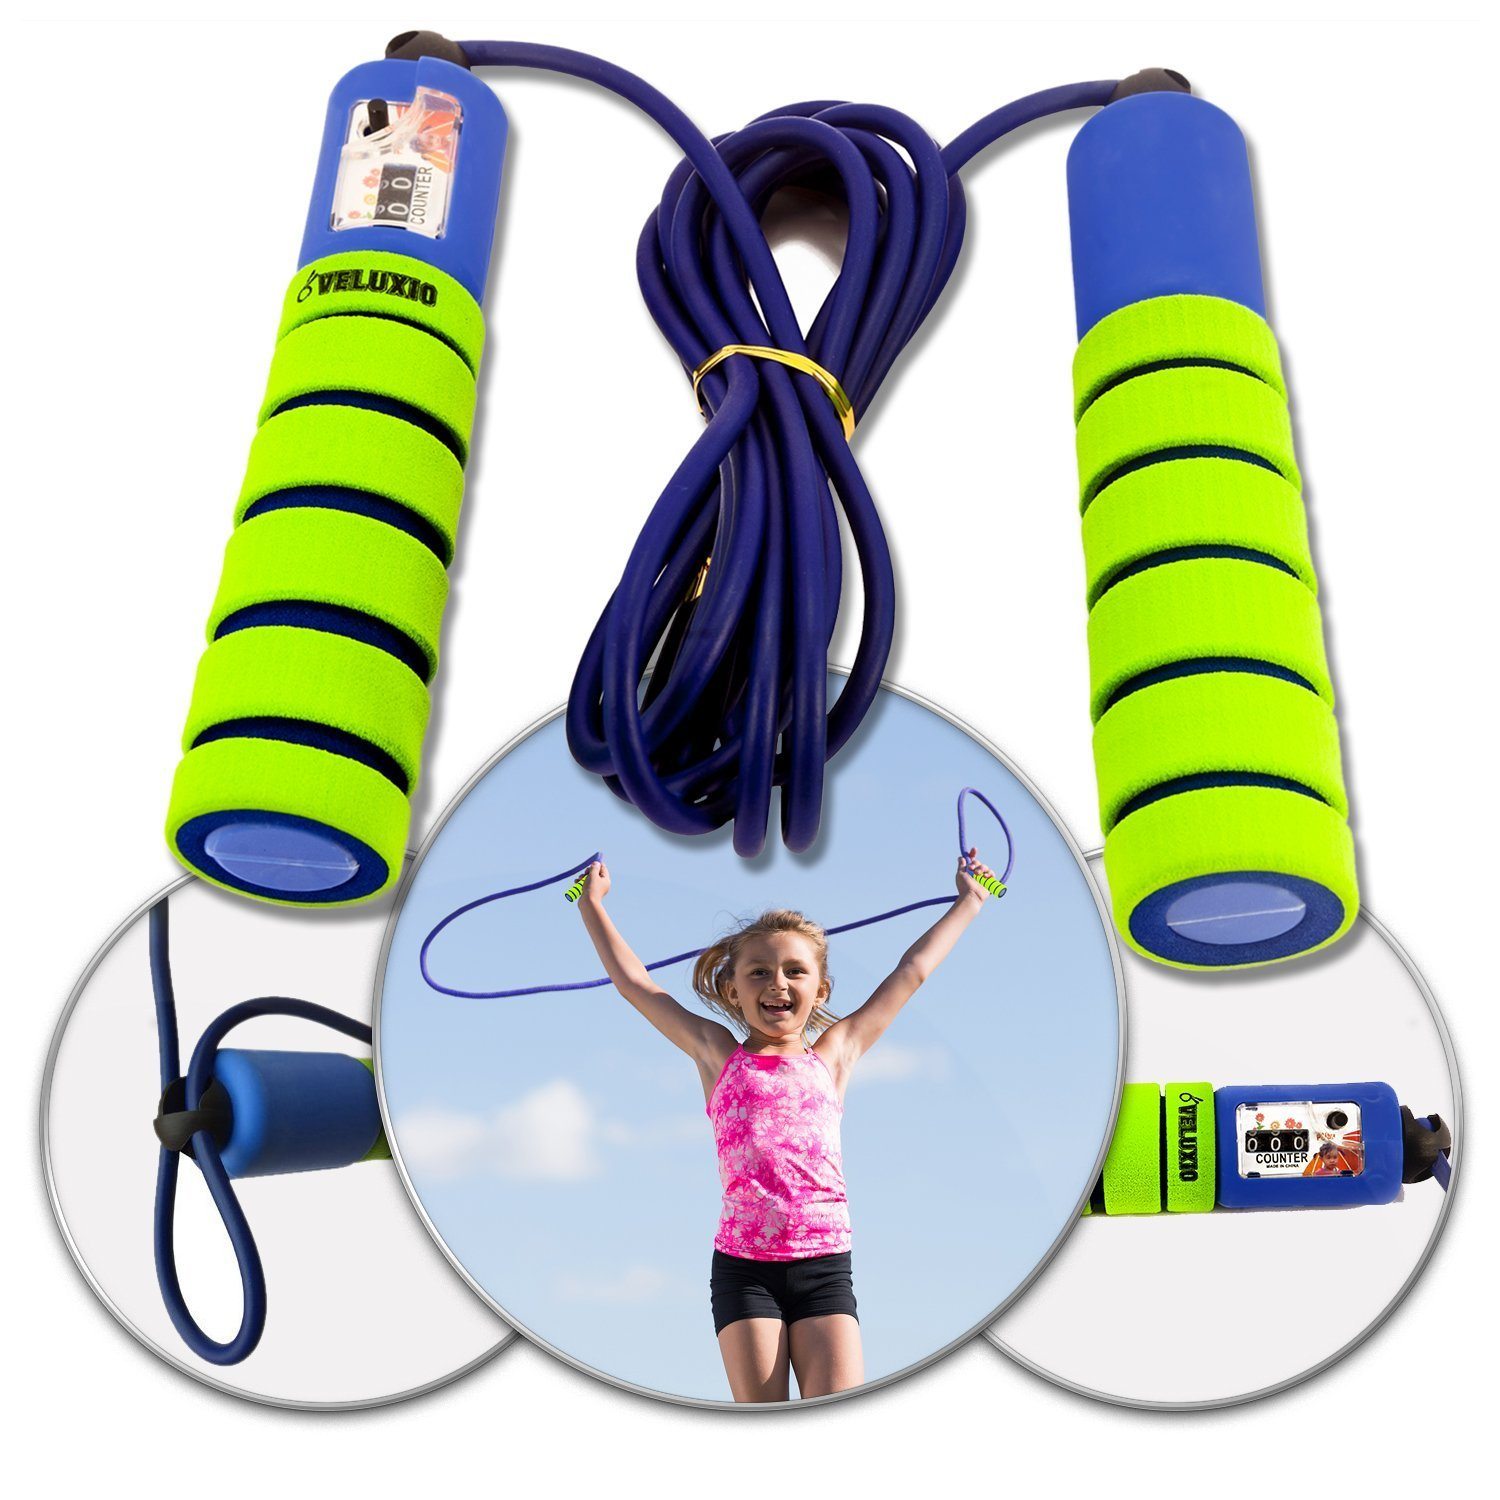 Veluxio Adjustable Jump Rope for Kids with Counter   eBay